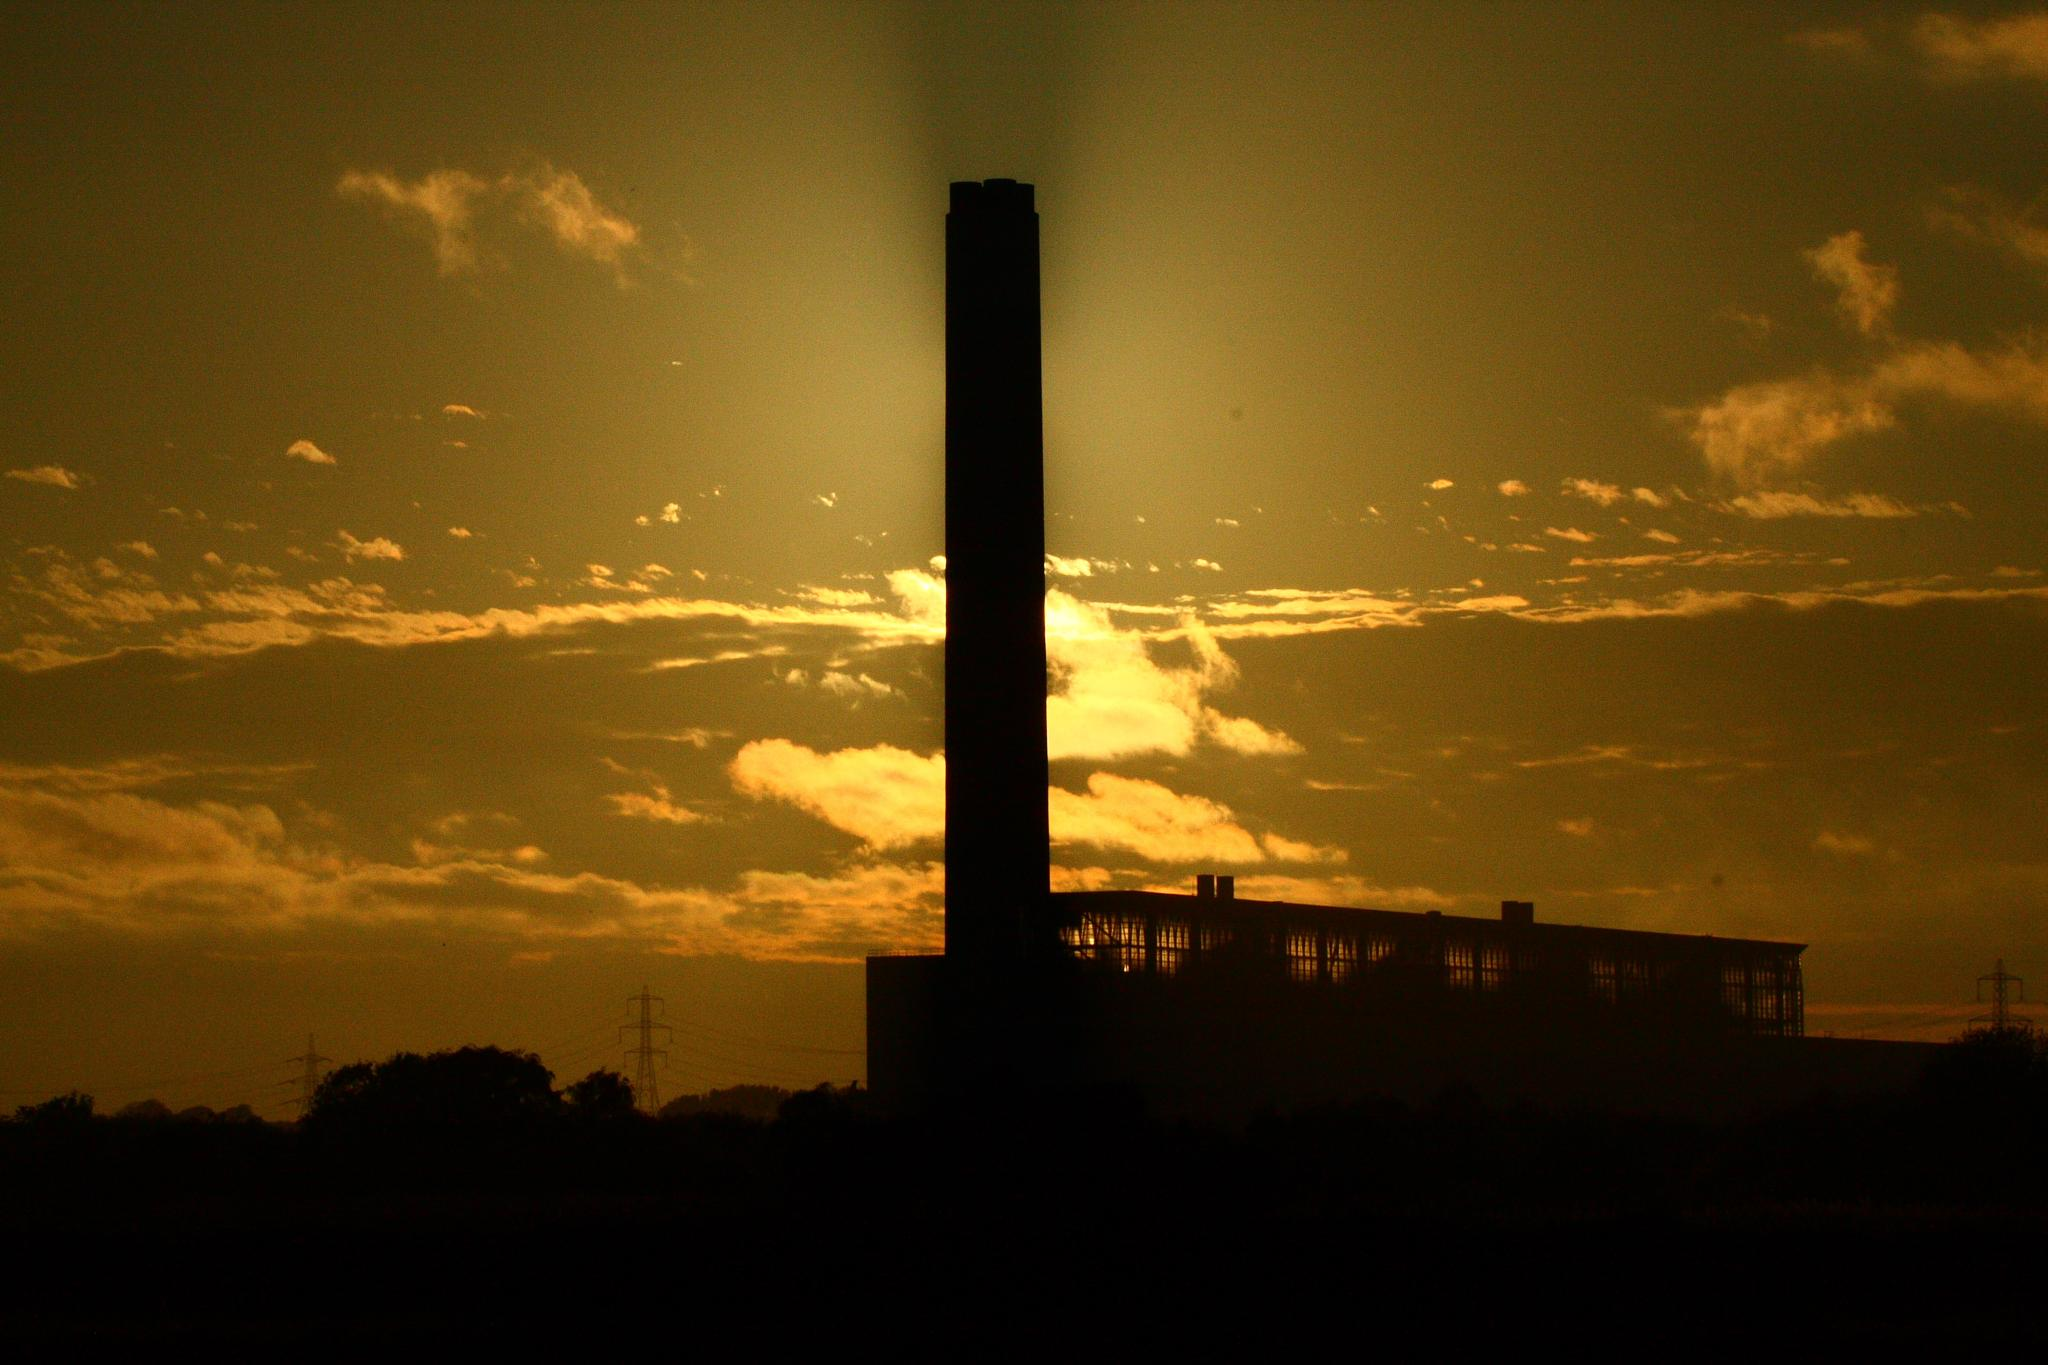 The ghost of Fawley power station by sumostimmo